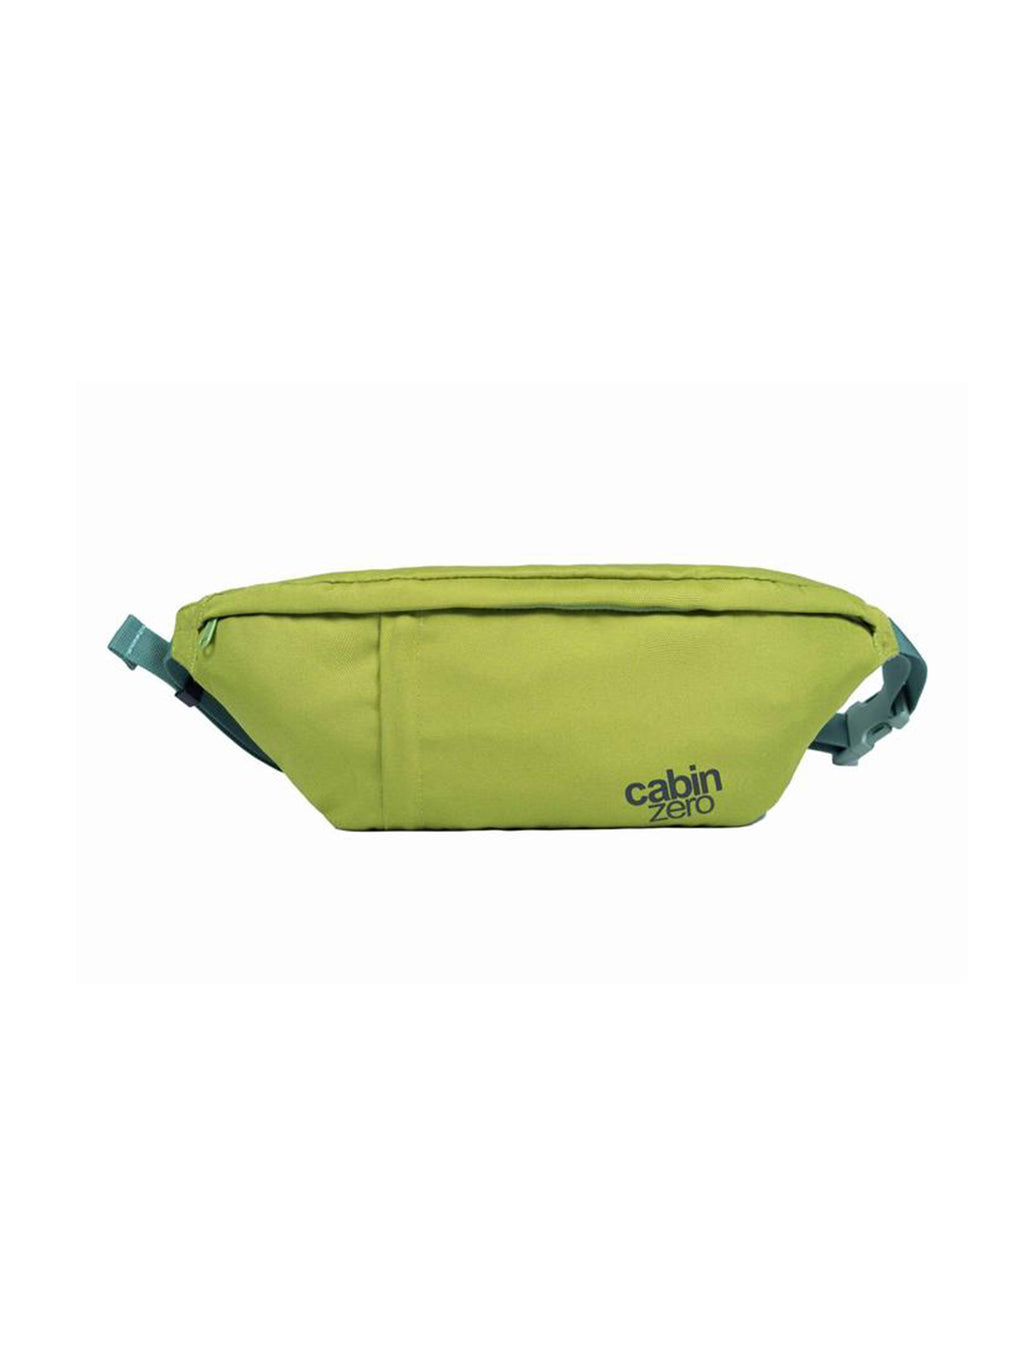 Cabinzero Hip Pack 2L in Sagano Green Color